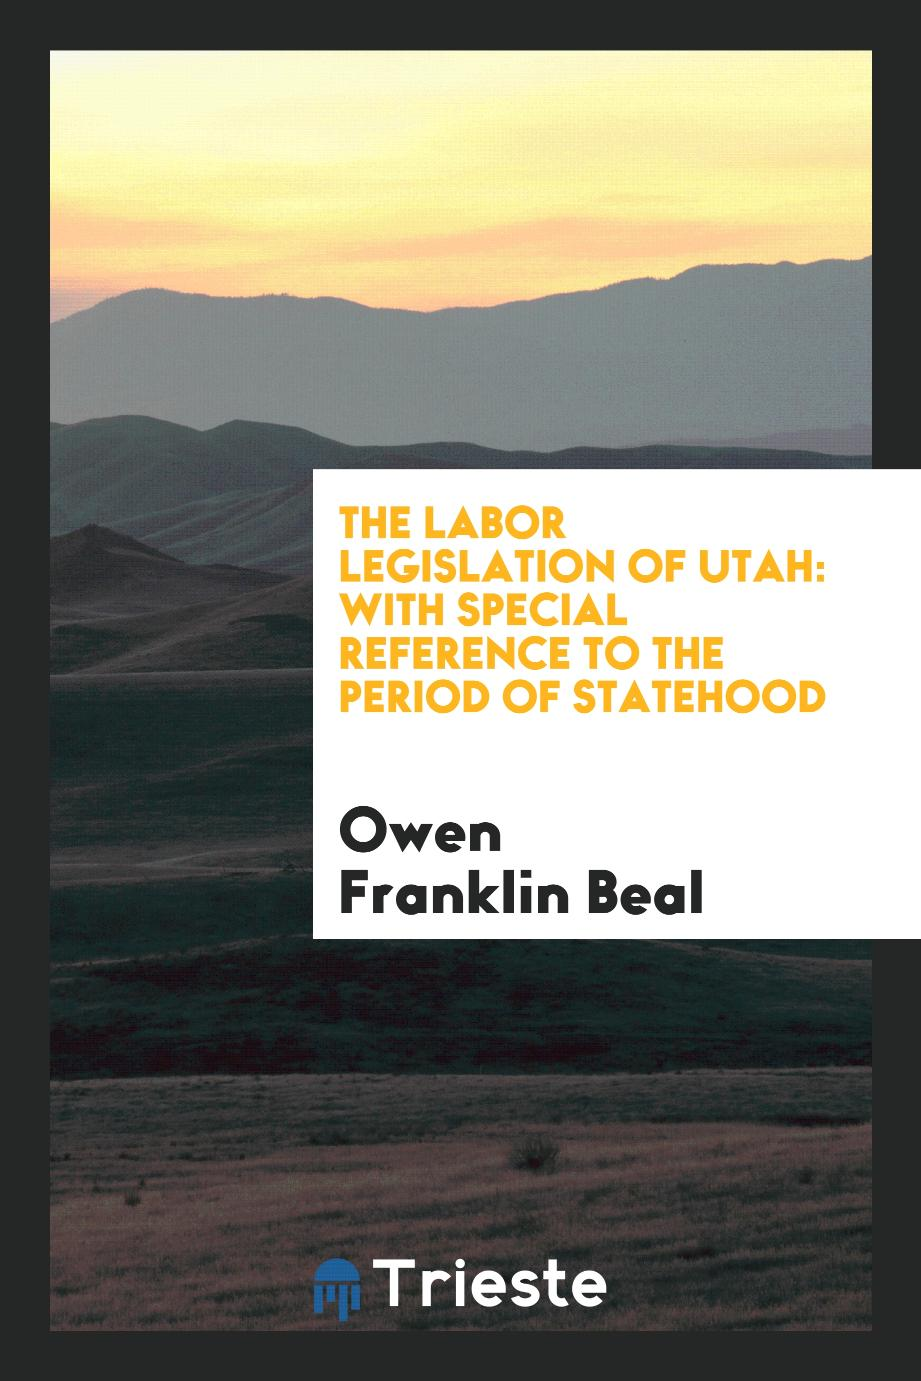 The Labor Legislation of Utah: With Special Reference to the Period of Statehood